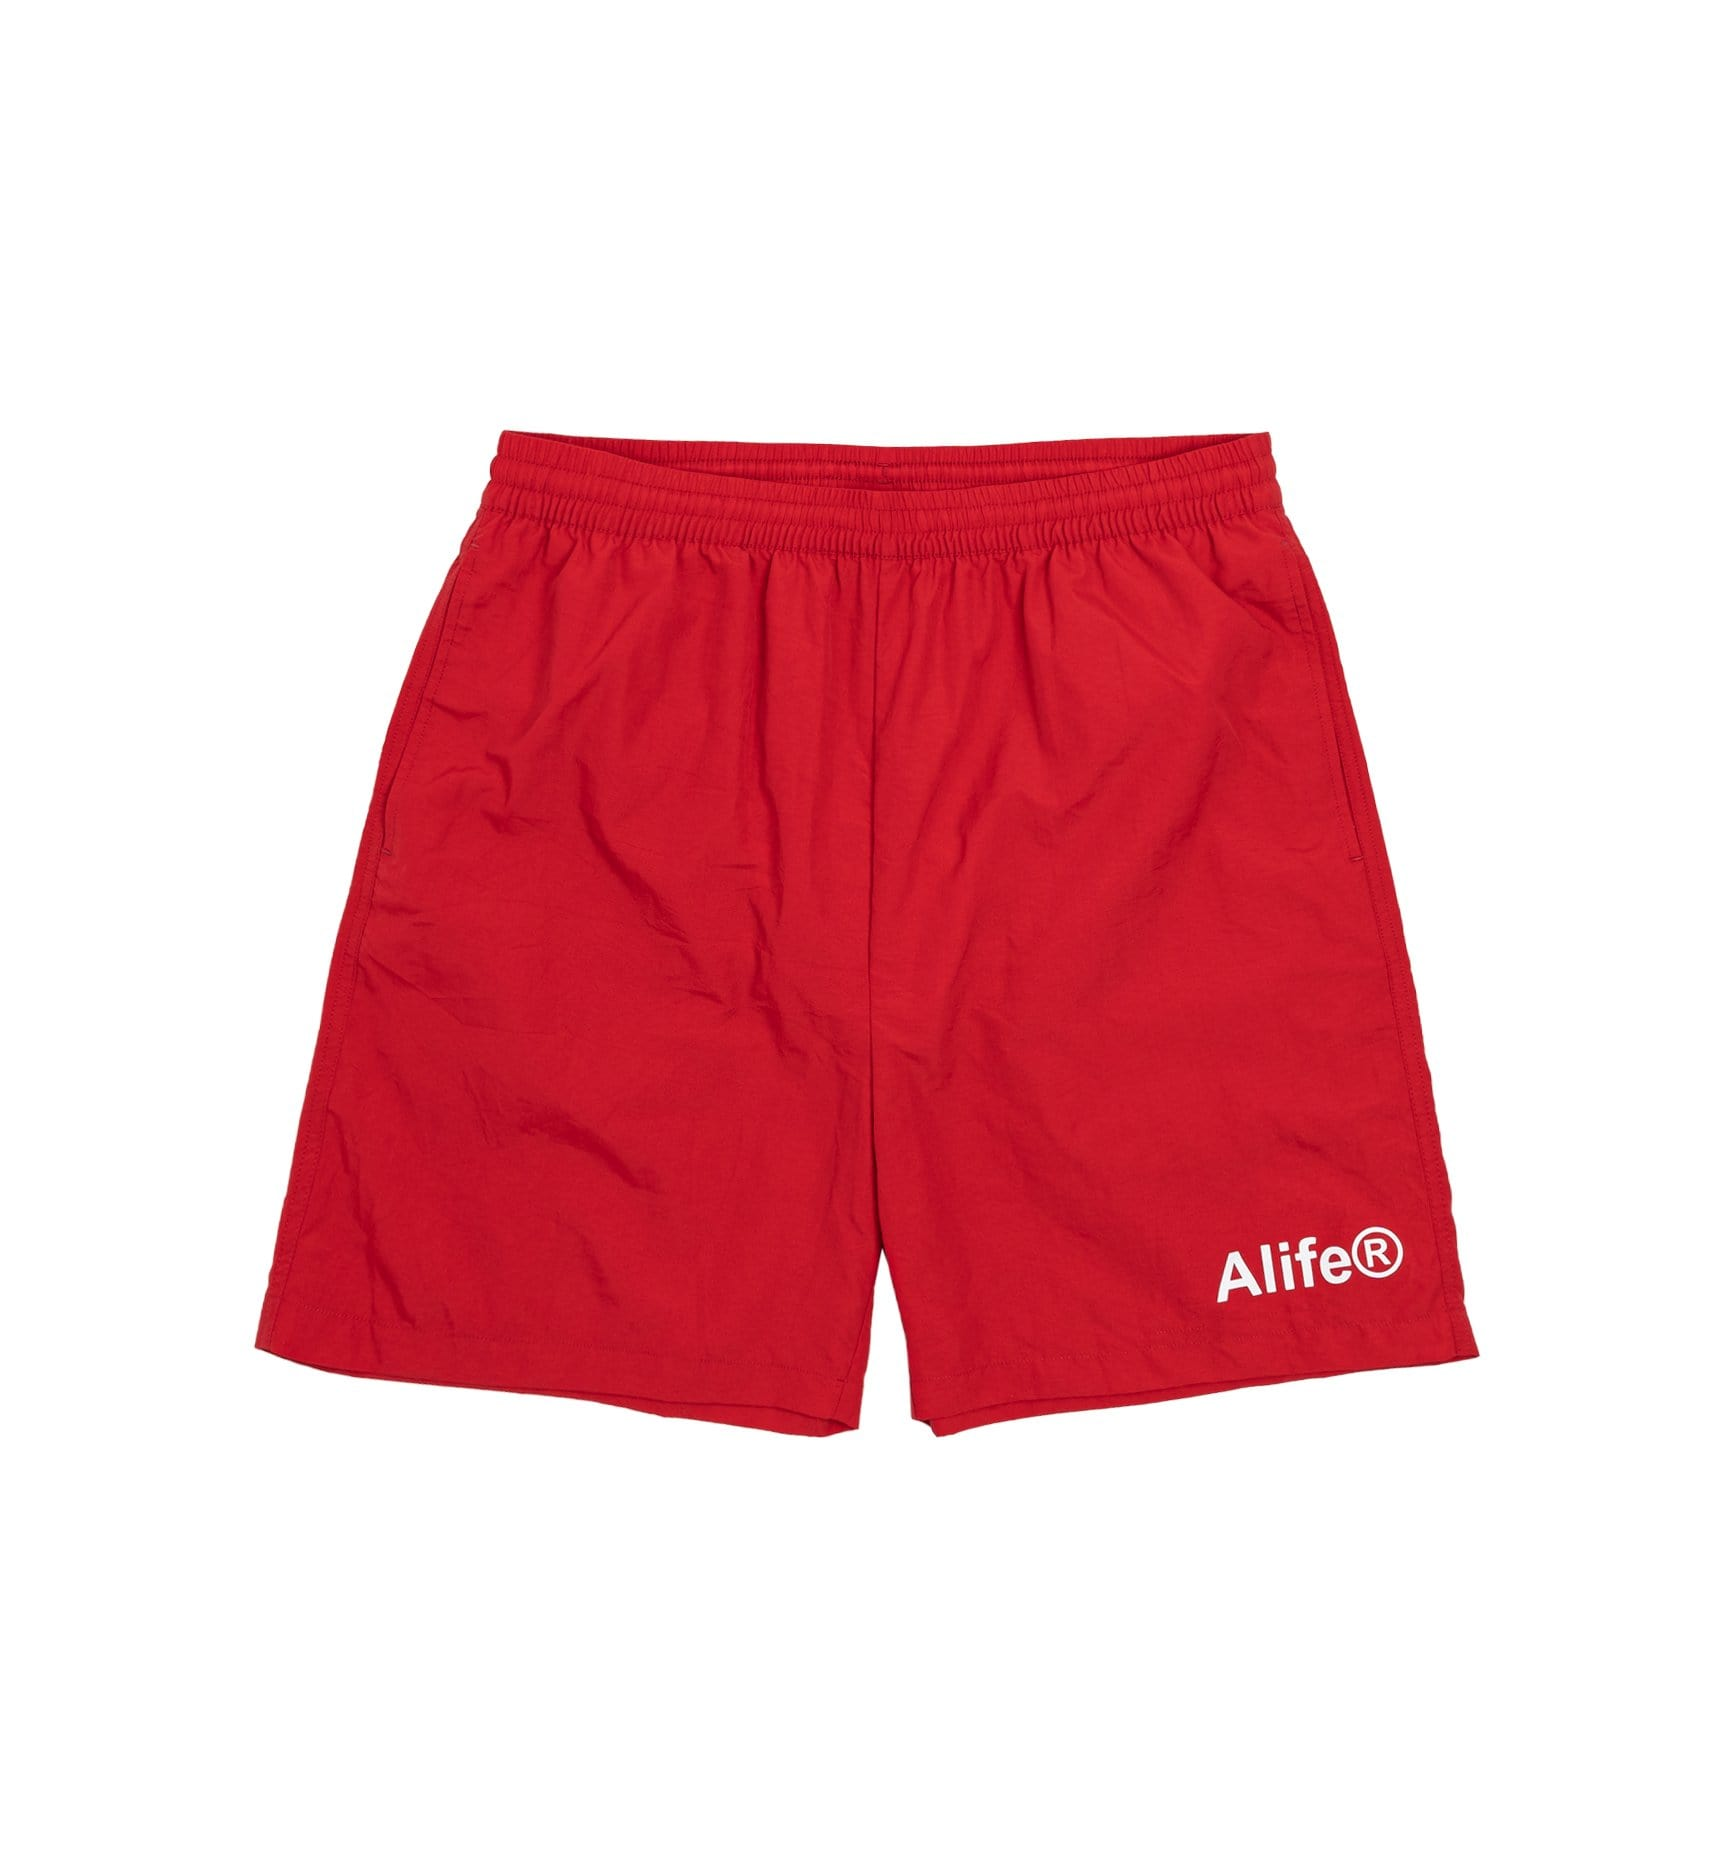 Alife Swim/Run Nylon Shorts - Red